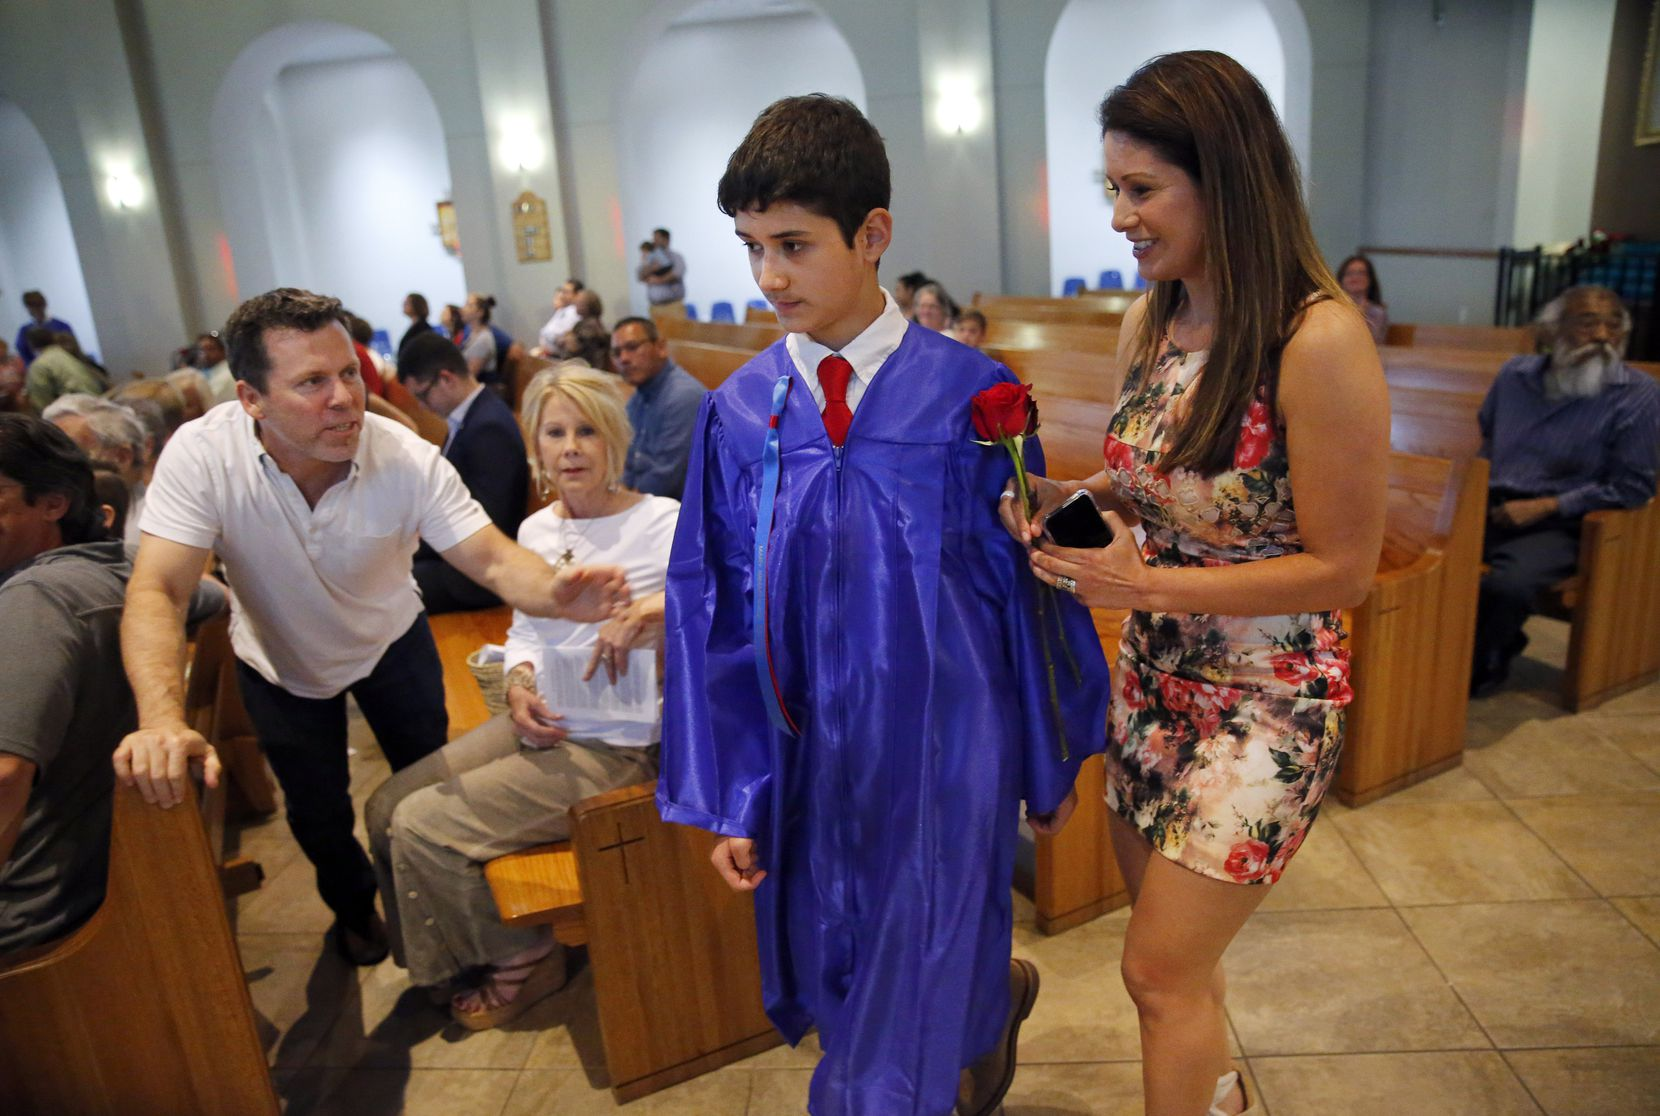 Zack Thibodeaux honored his mother Johanna Uek with a rose as his step-father Joey Uek (left) leans in to congratulate him on his 8th grade graduation.